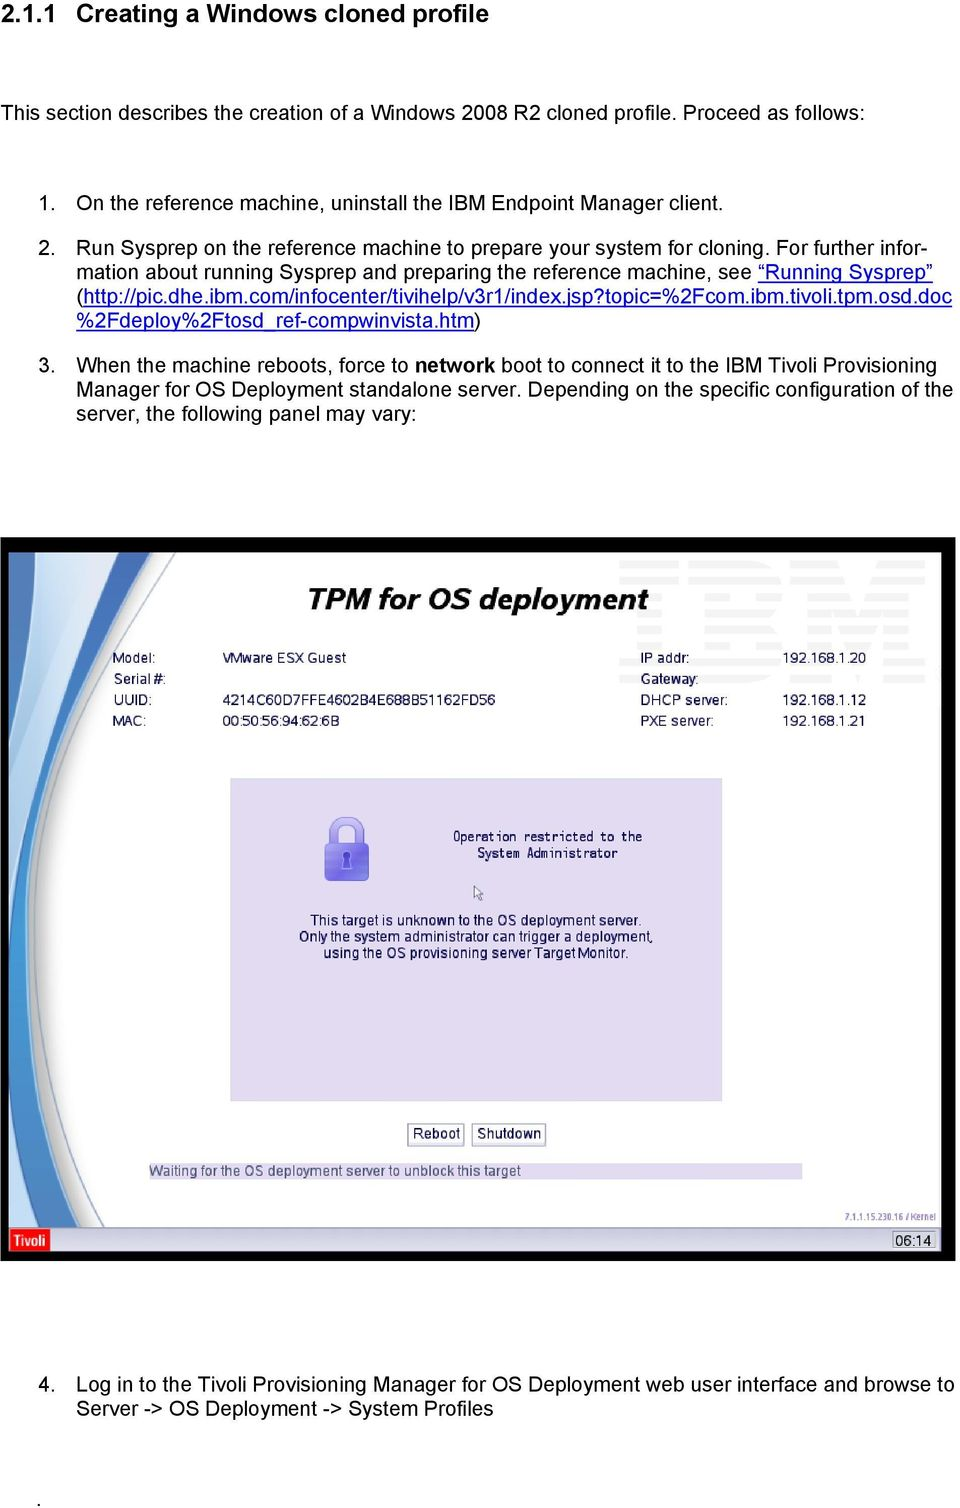 For further information about running Sysprep and preparing the reference machine, see Running Sysprep (http://pic.dhe.ibm.com/infocenter/tivihelp/v3r1/index.jsp?topic=%2fcom.ibm.tivoli.tpm.osd.